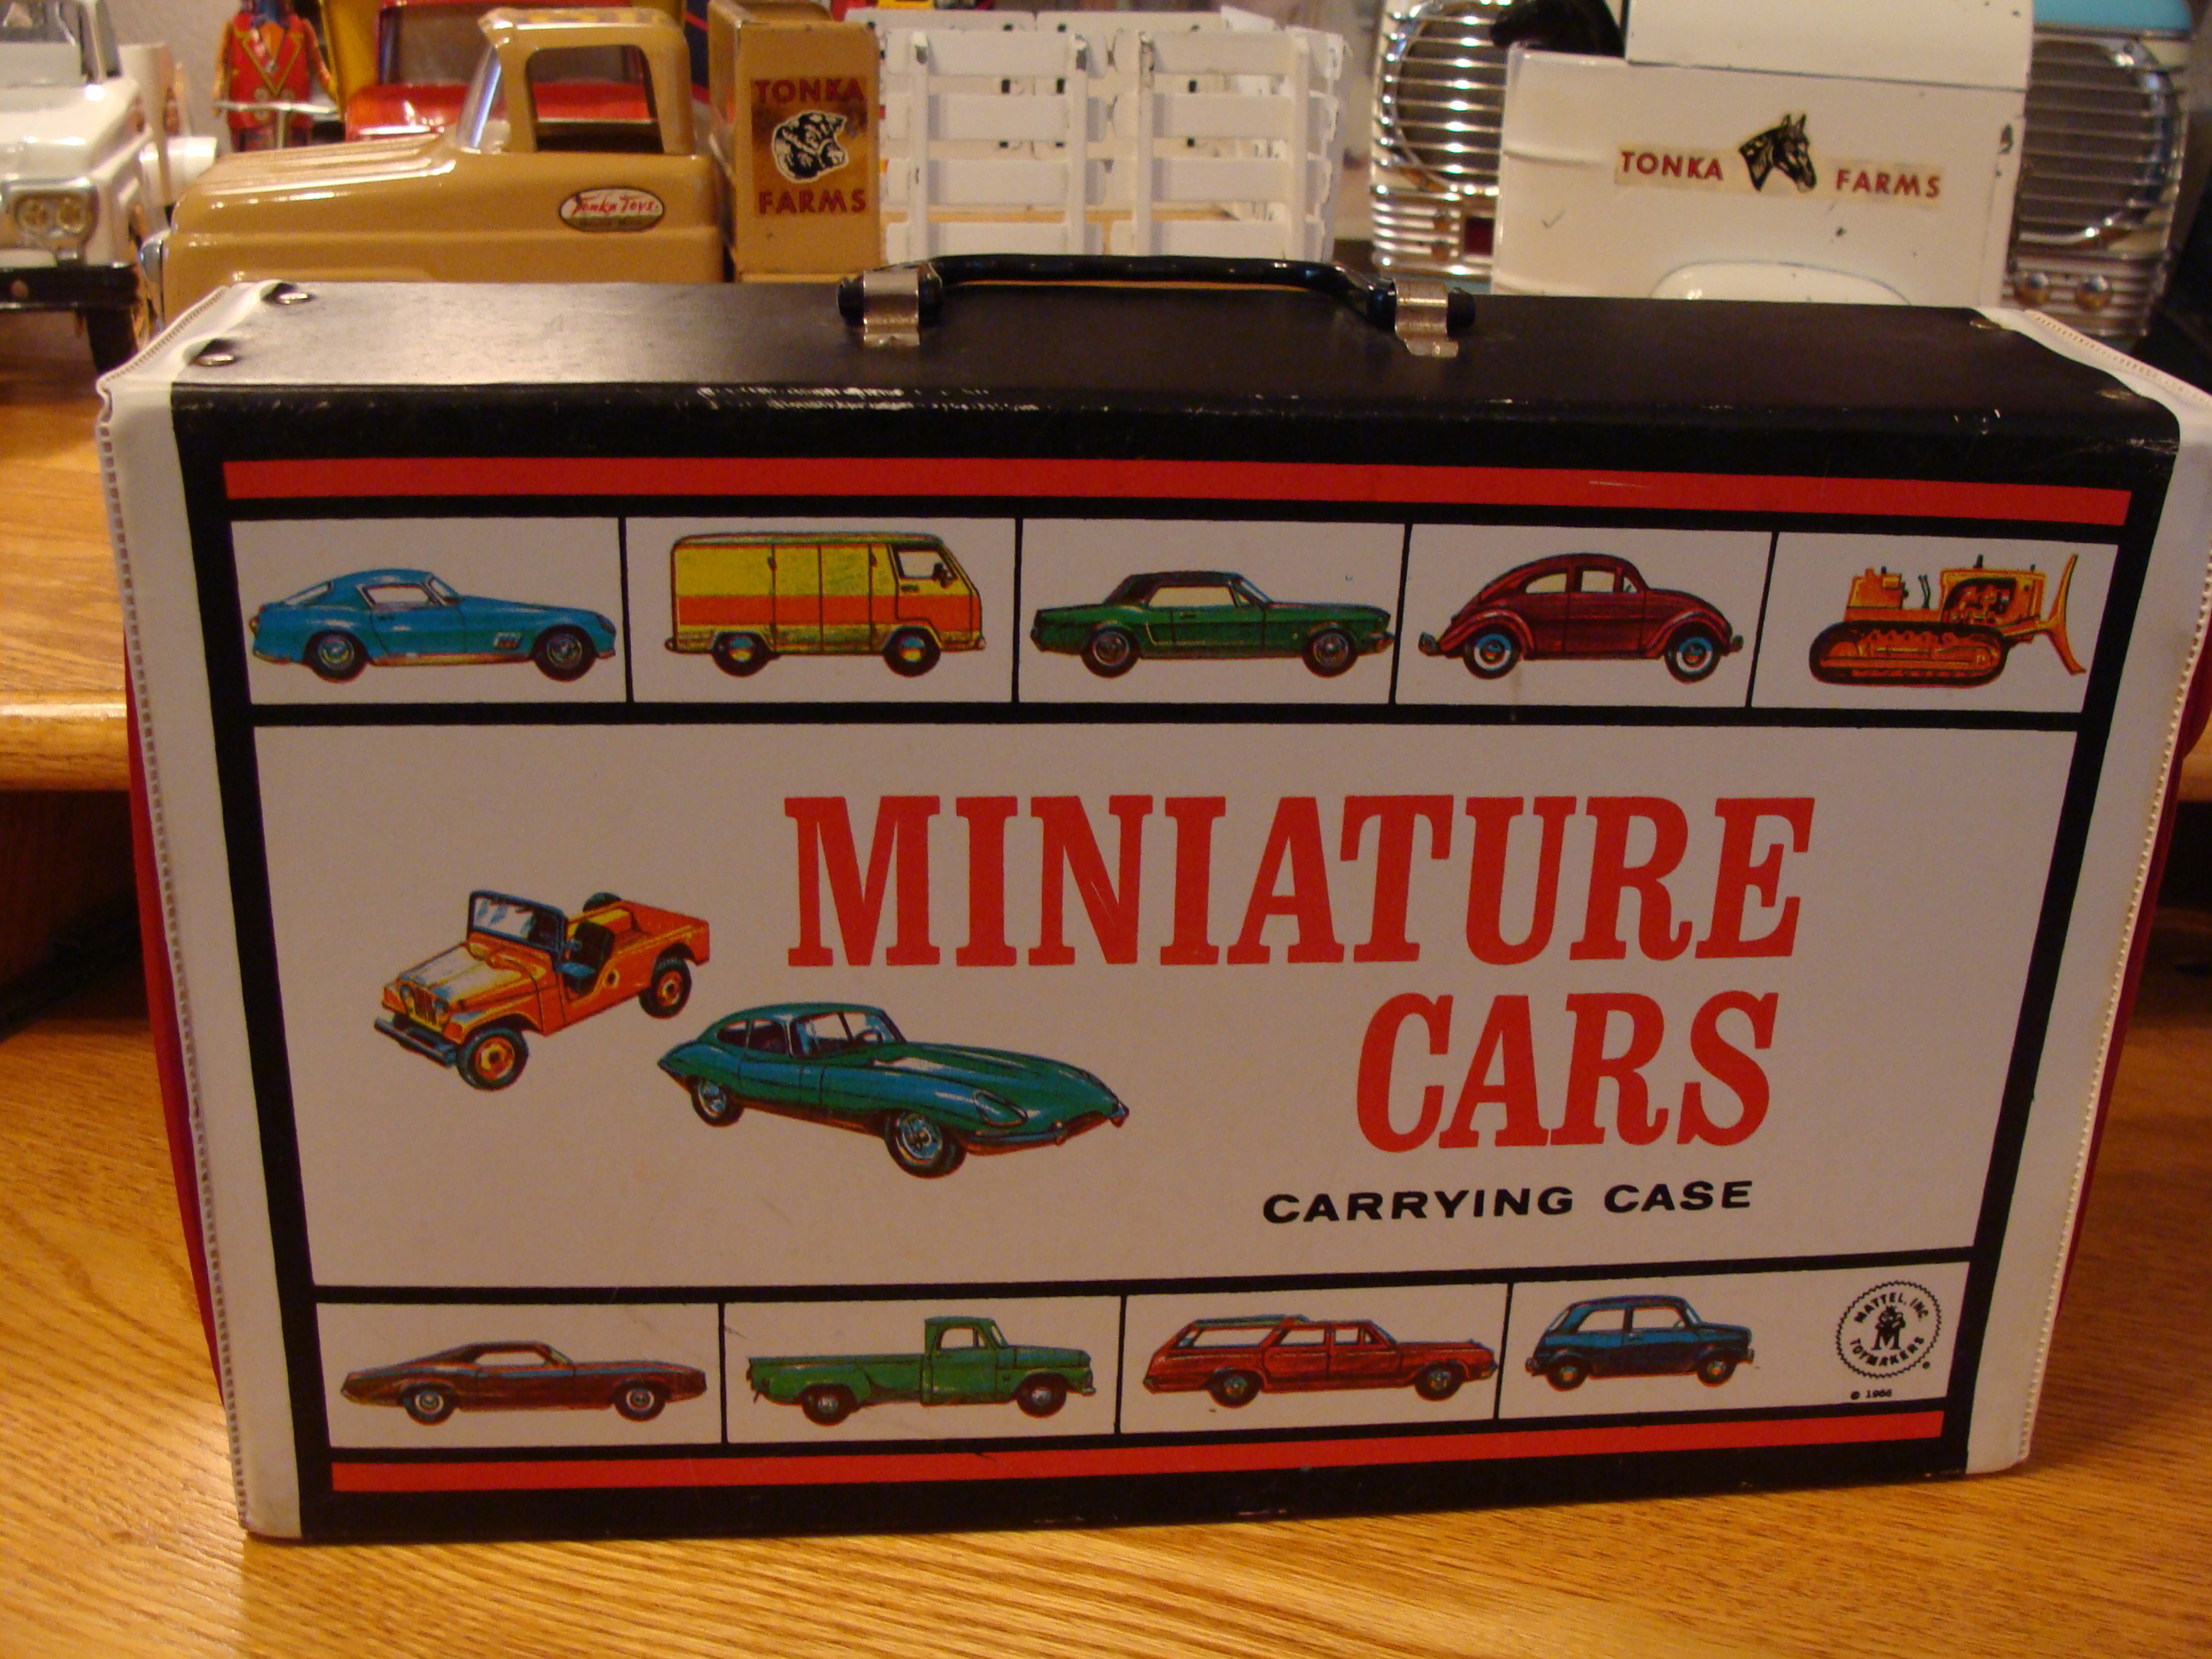 1966 Miniature 40 Cars Carrying Case and Matchbox Collection